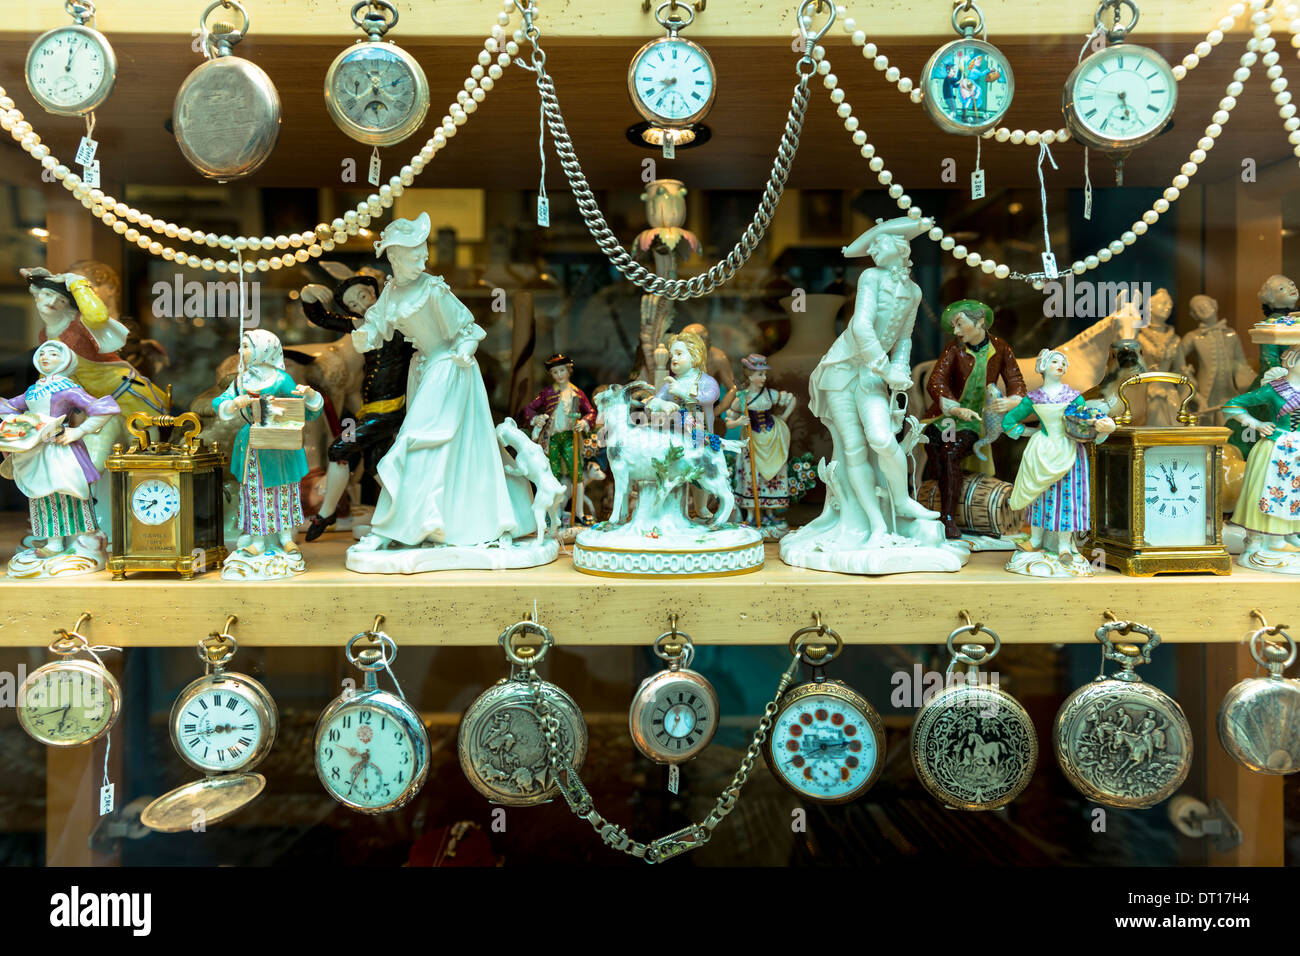 Porcelain figures, clocks and pocket watches on display at Bordhin antique shop in Burgstrasse in Munich, Bavaria, Germany - Stock Image